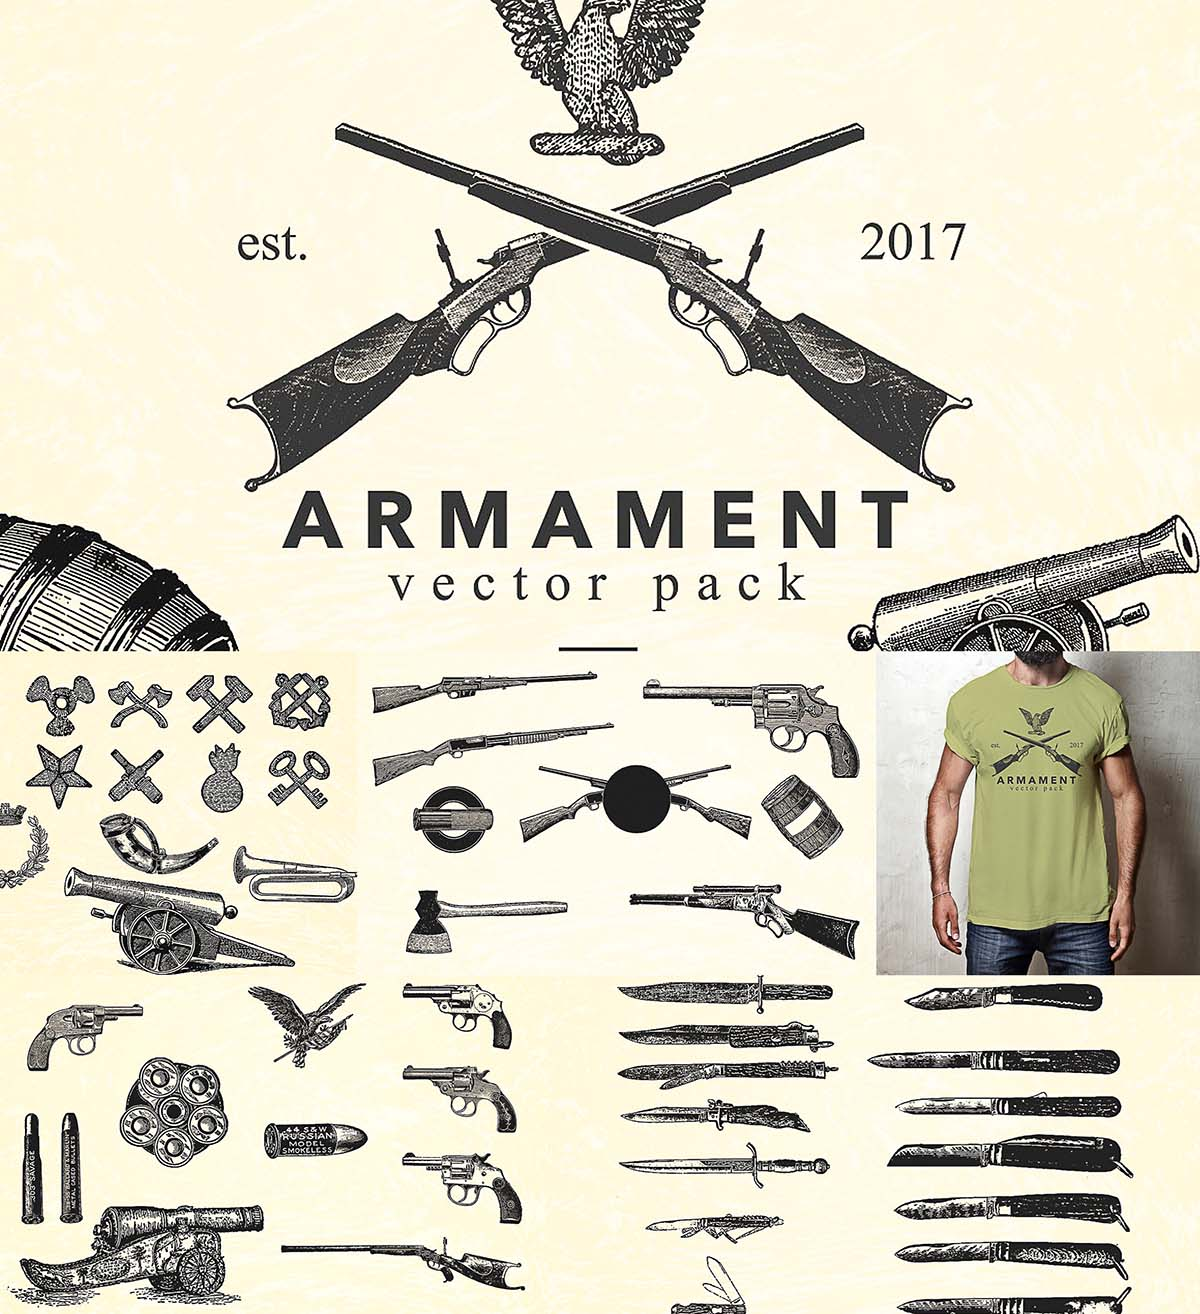 Armament vintage gun illustrations